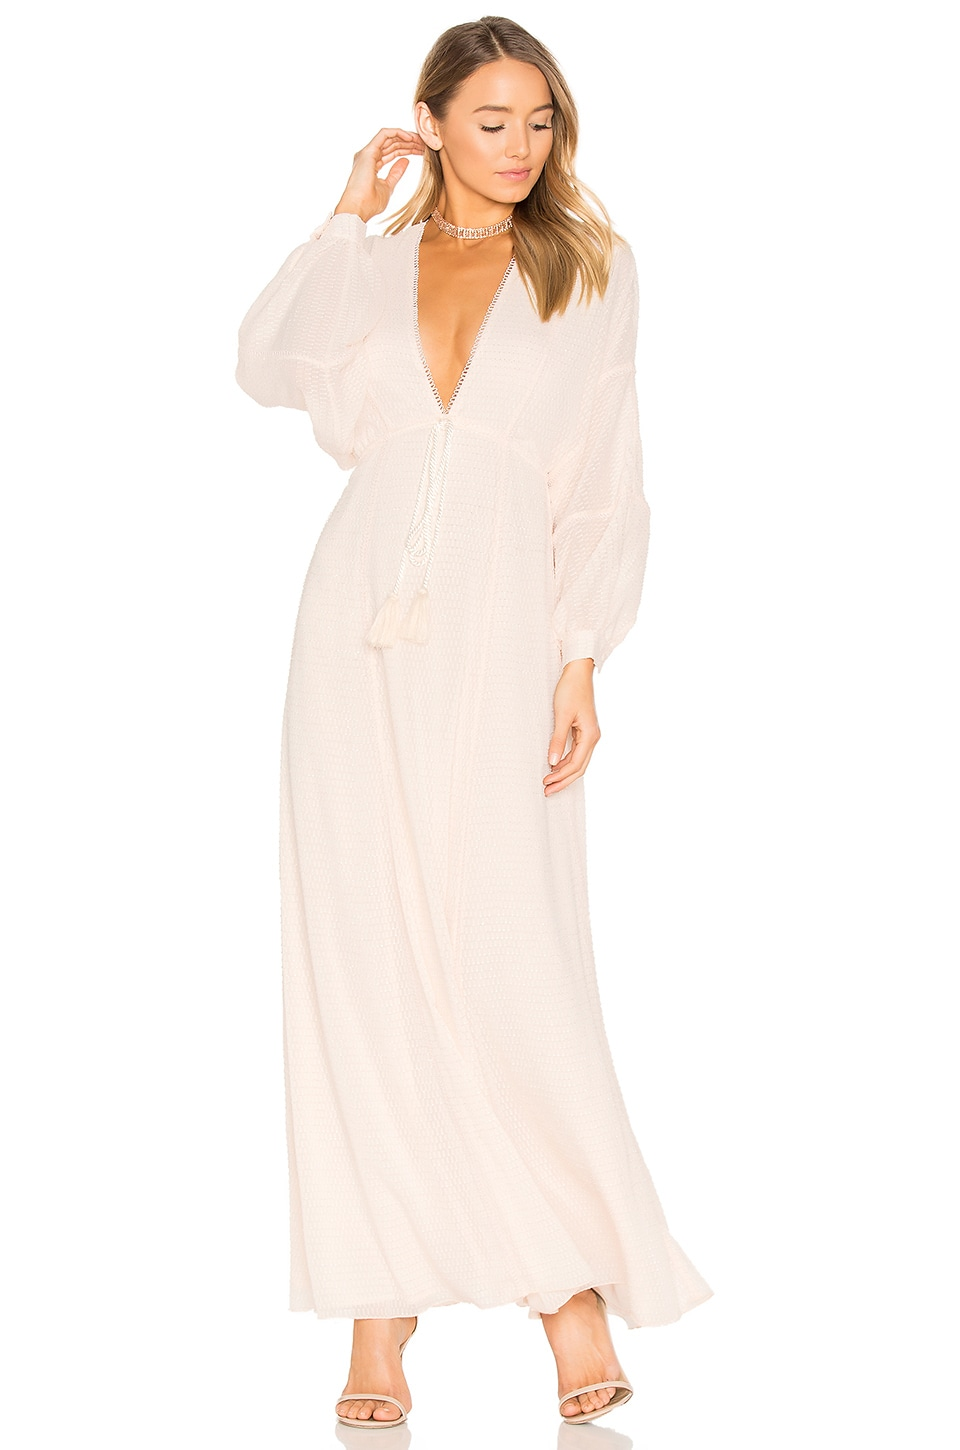 House of Harlow 1960 x REVOLVE Leslie Maxi Dress in Pearl